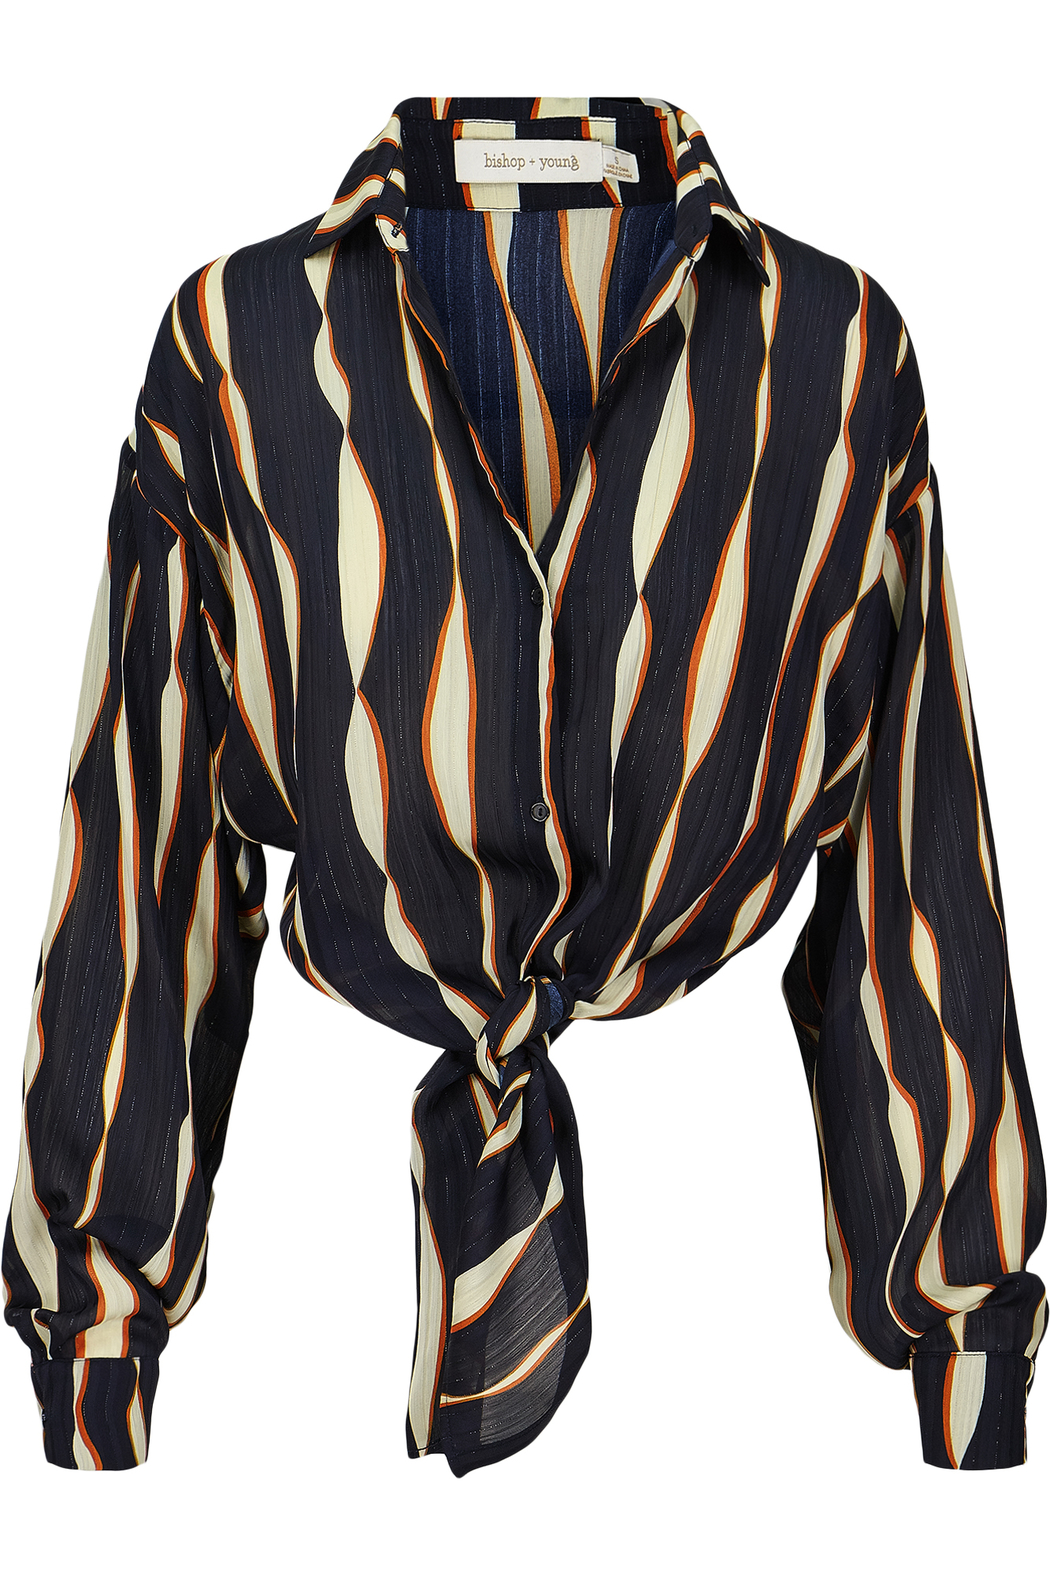 Bishop + Young Mara Print Tie Waist Blouse - Front Cropped Image